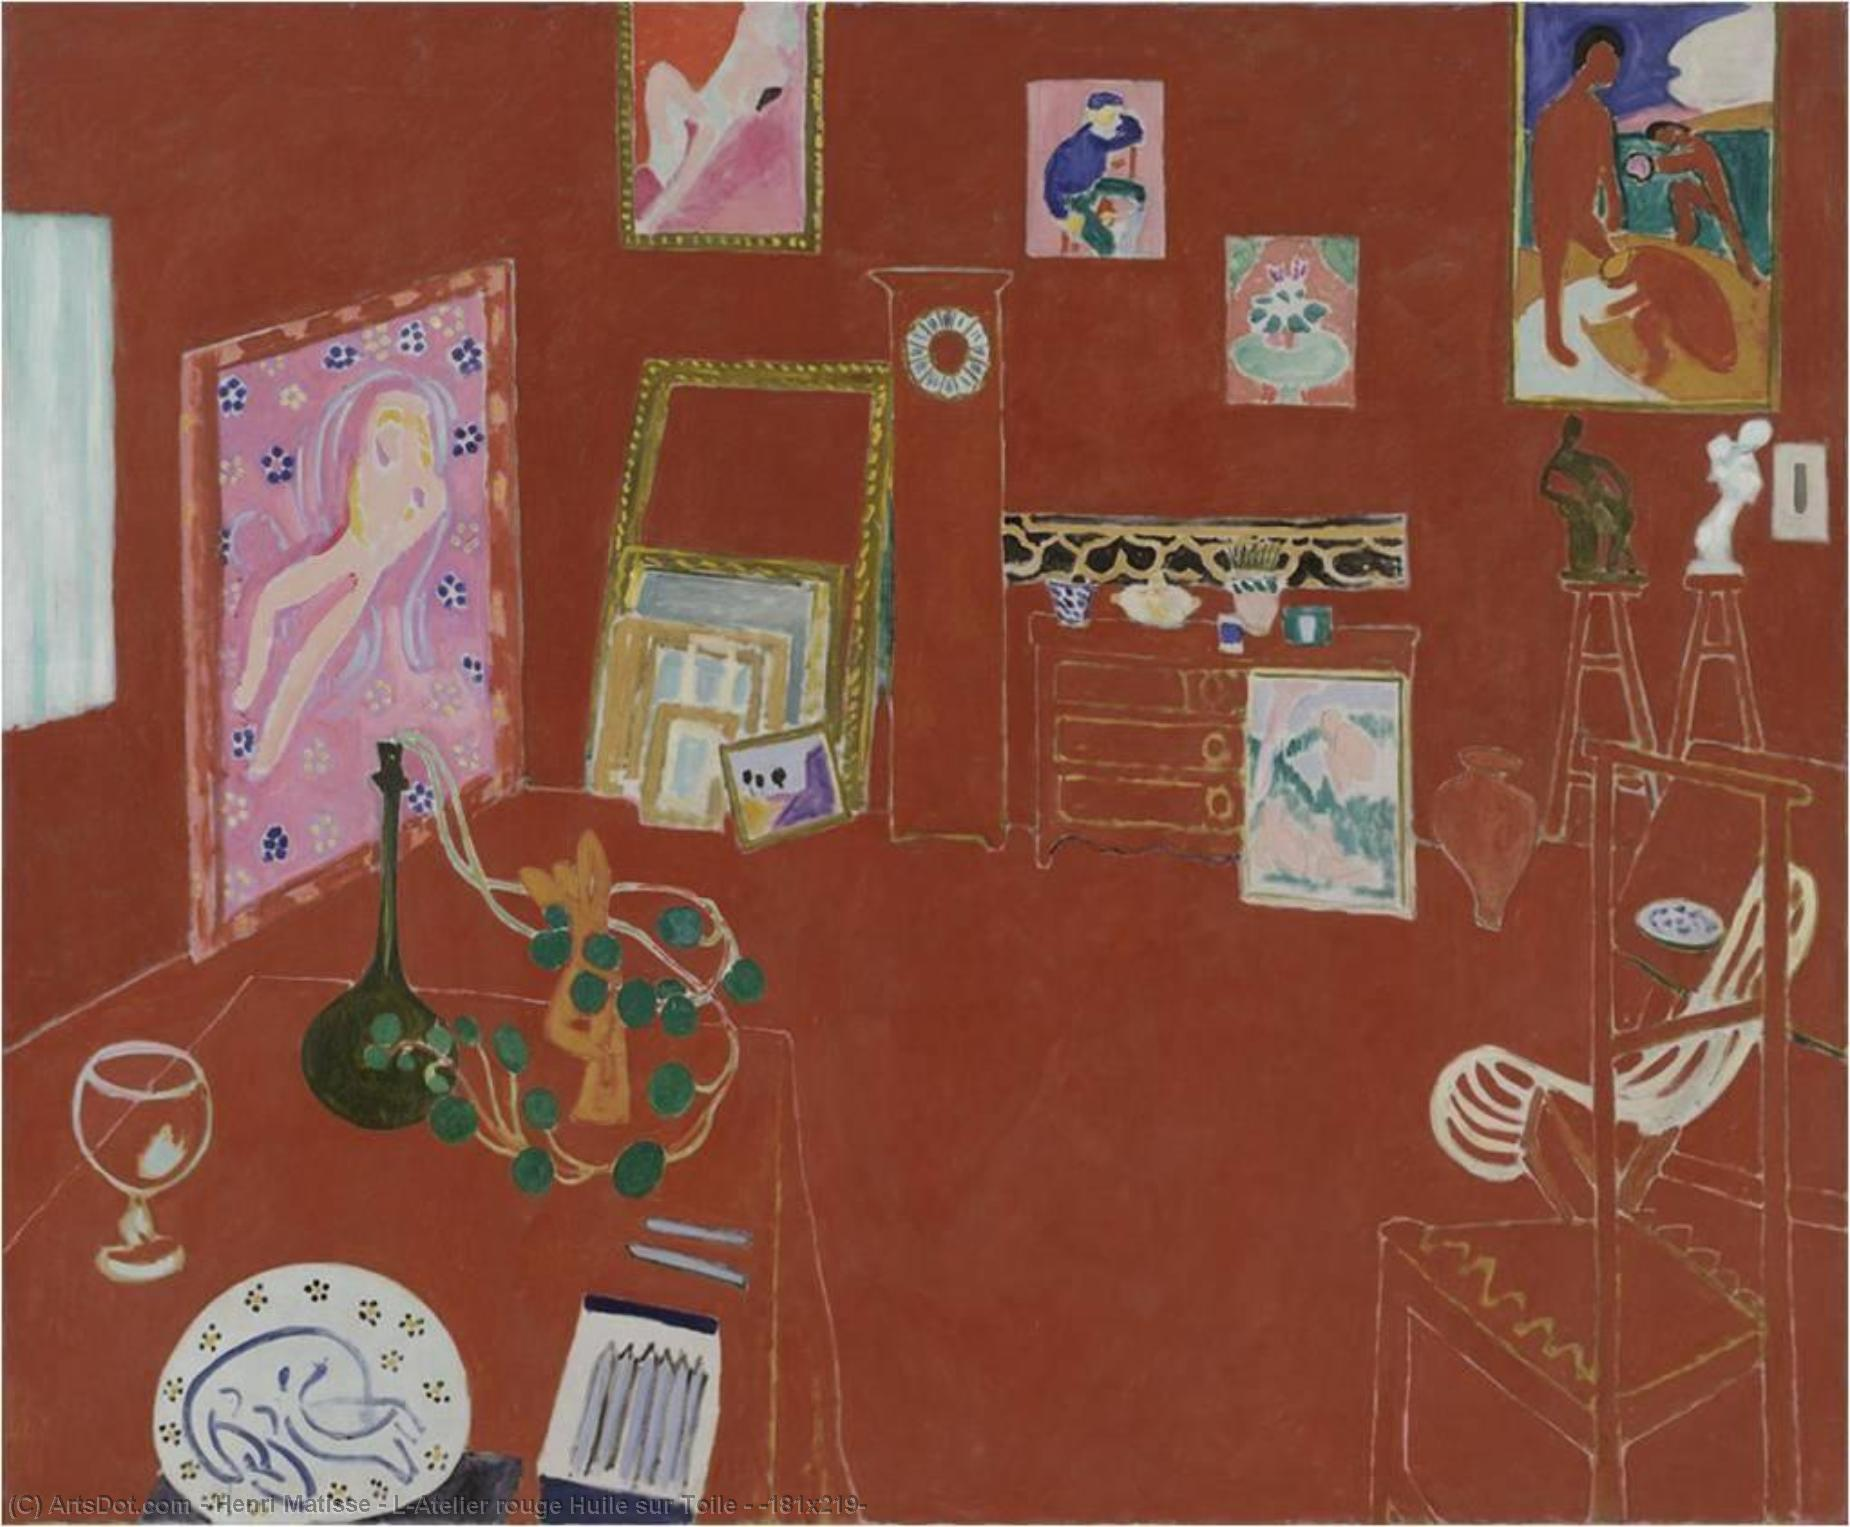 Wikioo.org - The Encyclopedia of Fine Arts - Painting, Artwork by Henri Matisse - L'Atelier rouge Huile sur Toile - (181x219)